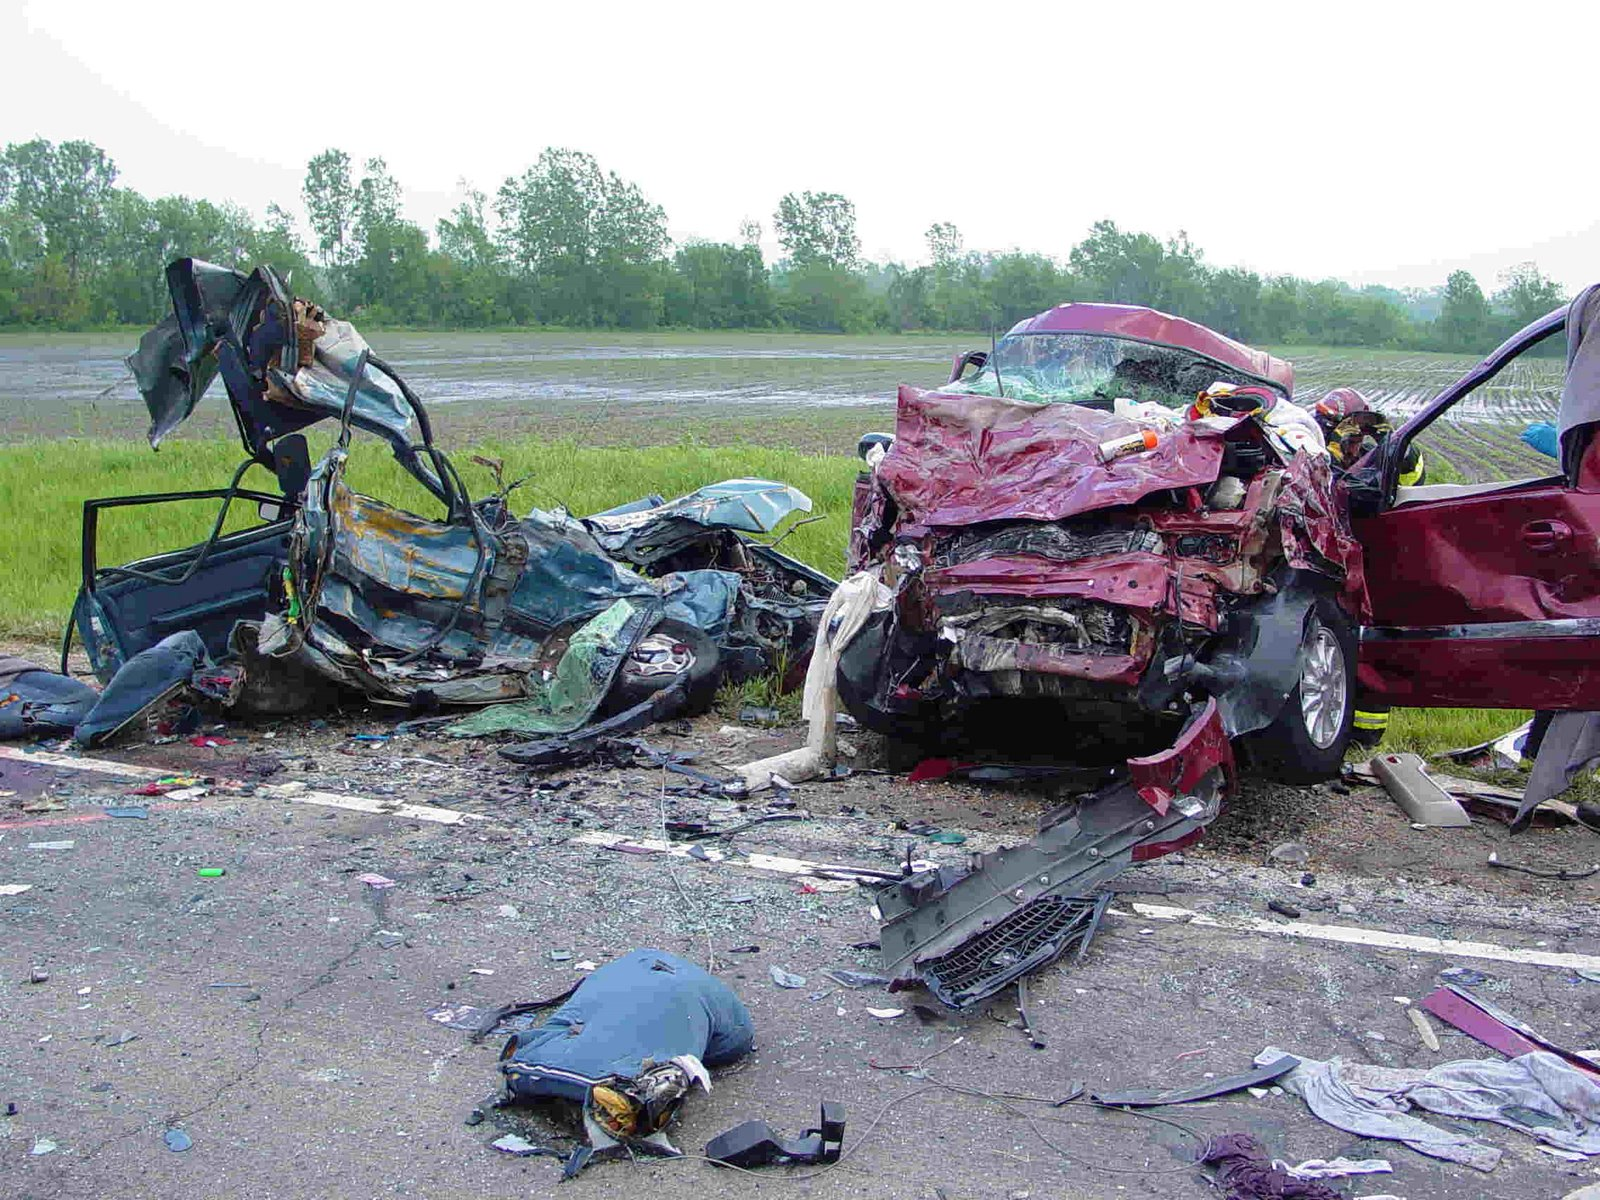 5 Reasons Why You Shouldn't Drink And Drive This Weekend